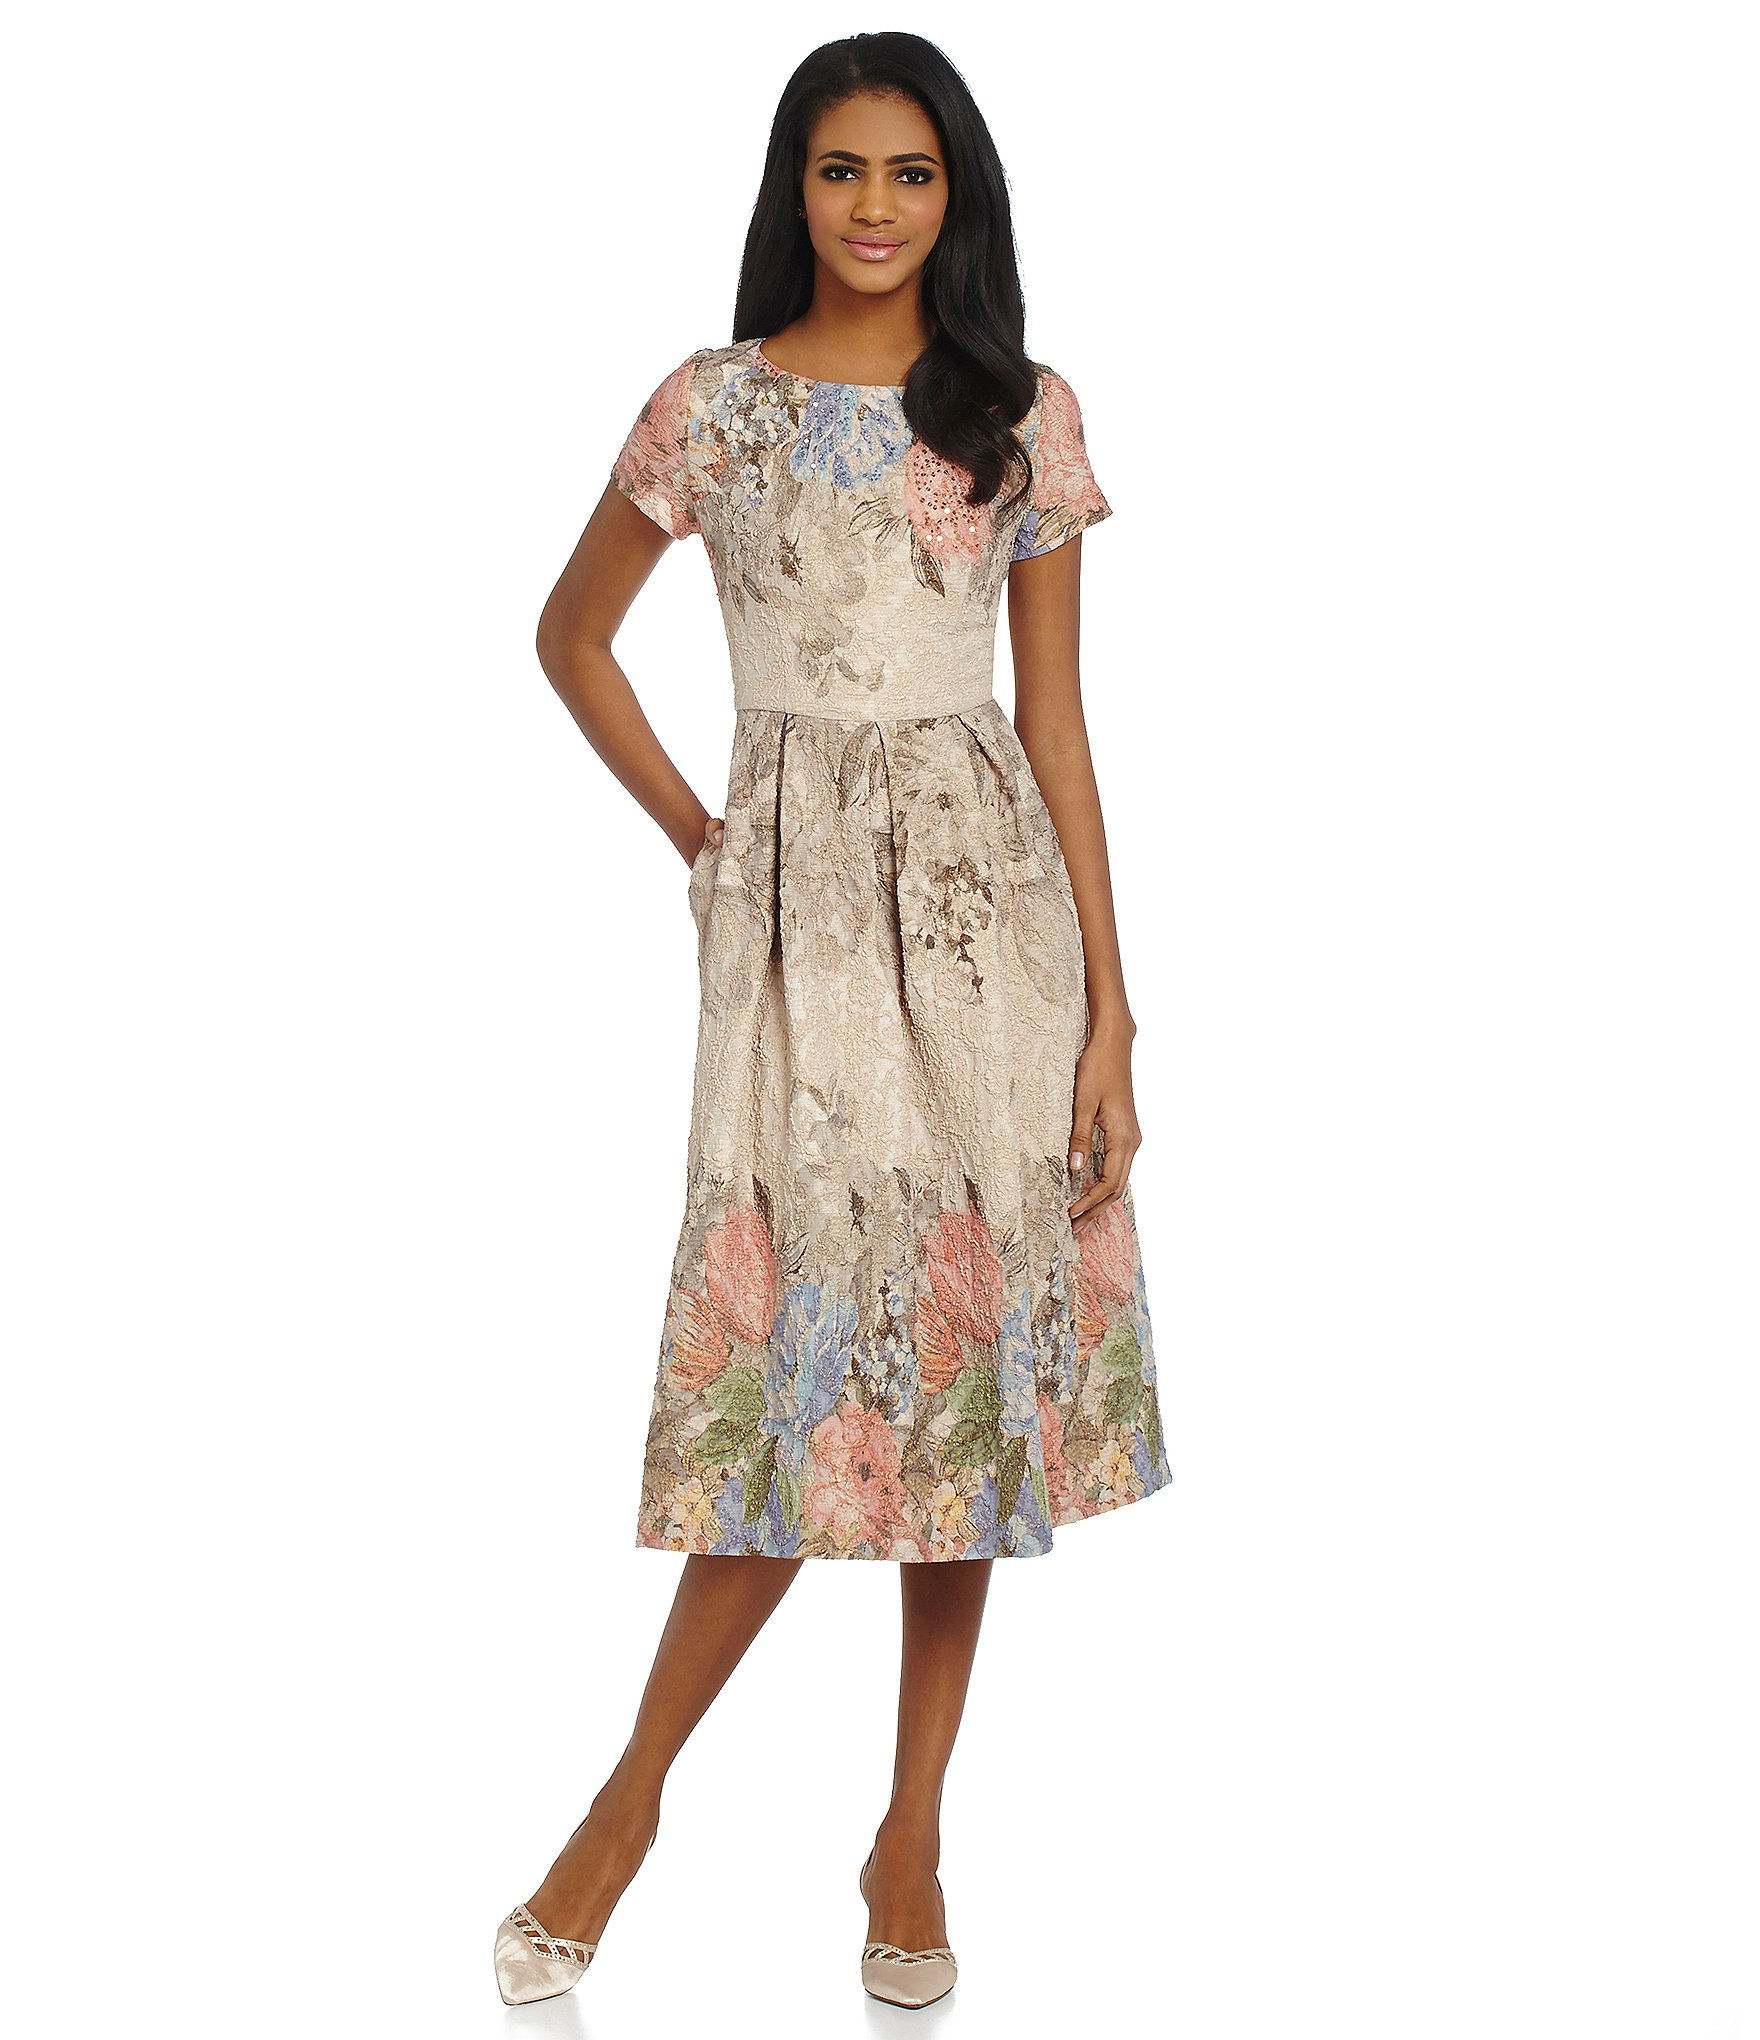 cb24085d3b26 Adrianna Papell Multicolor Beaded Floral Print Dress